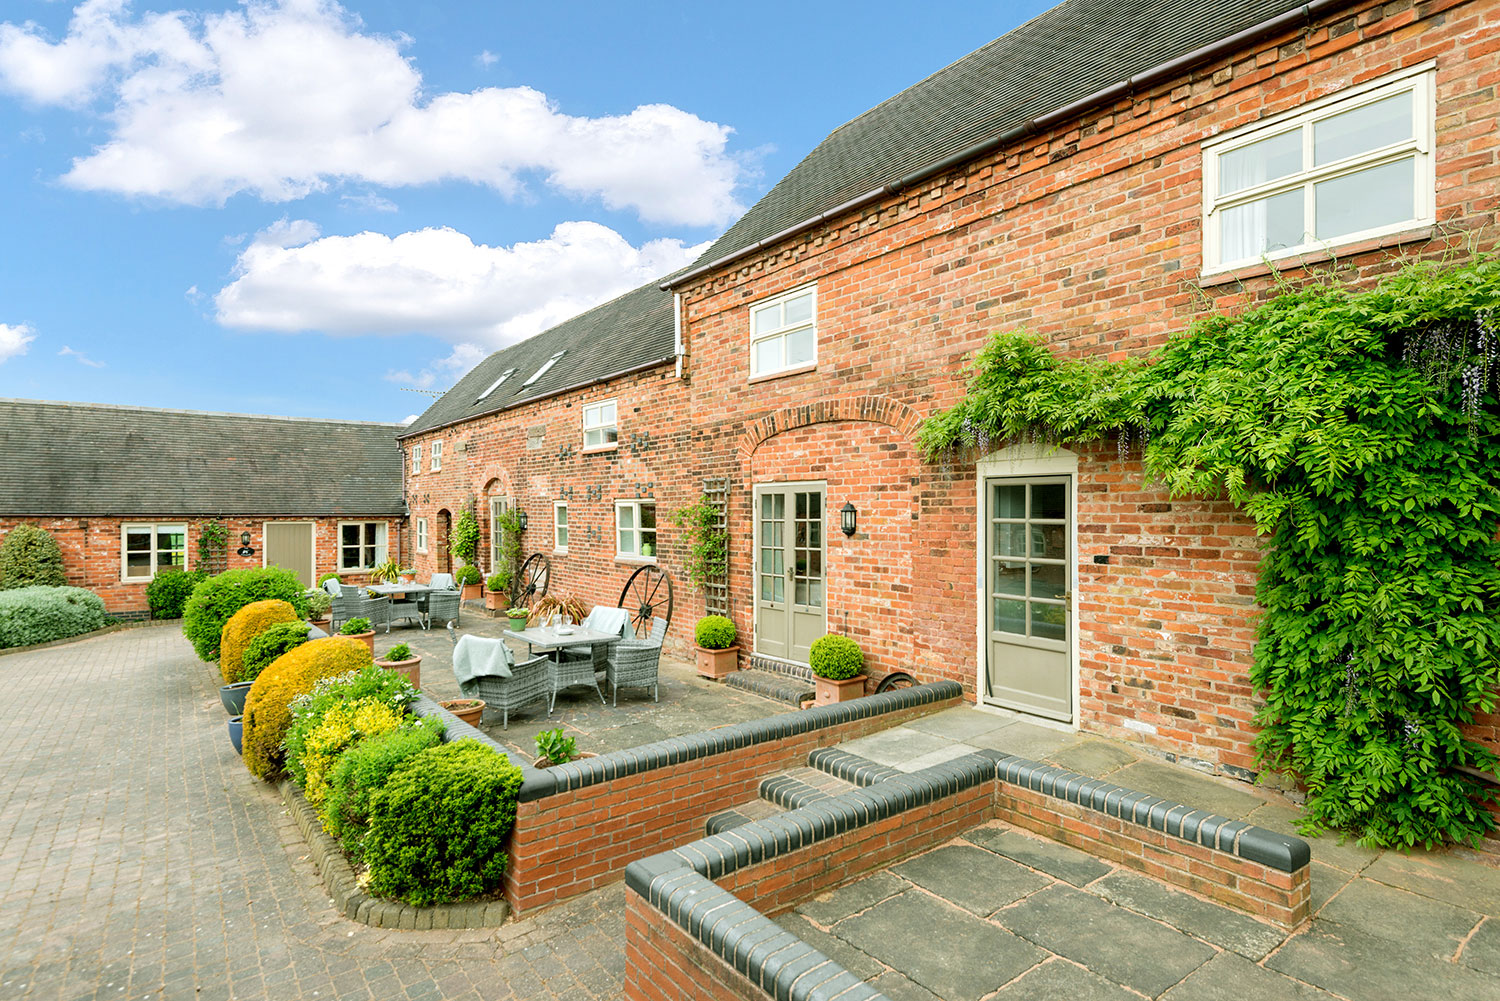 Holiday cottages and venue in rural Leicestershire | Upper Rectory Farm Cottages